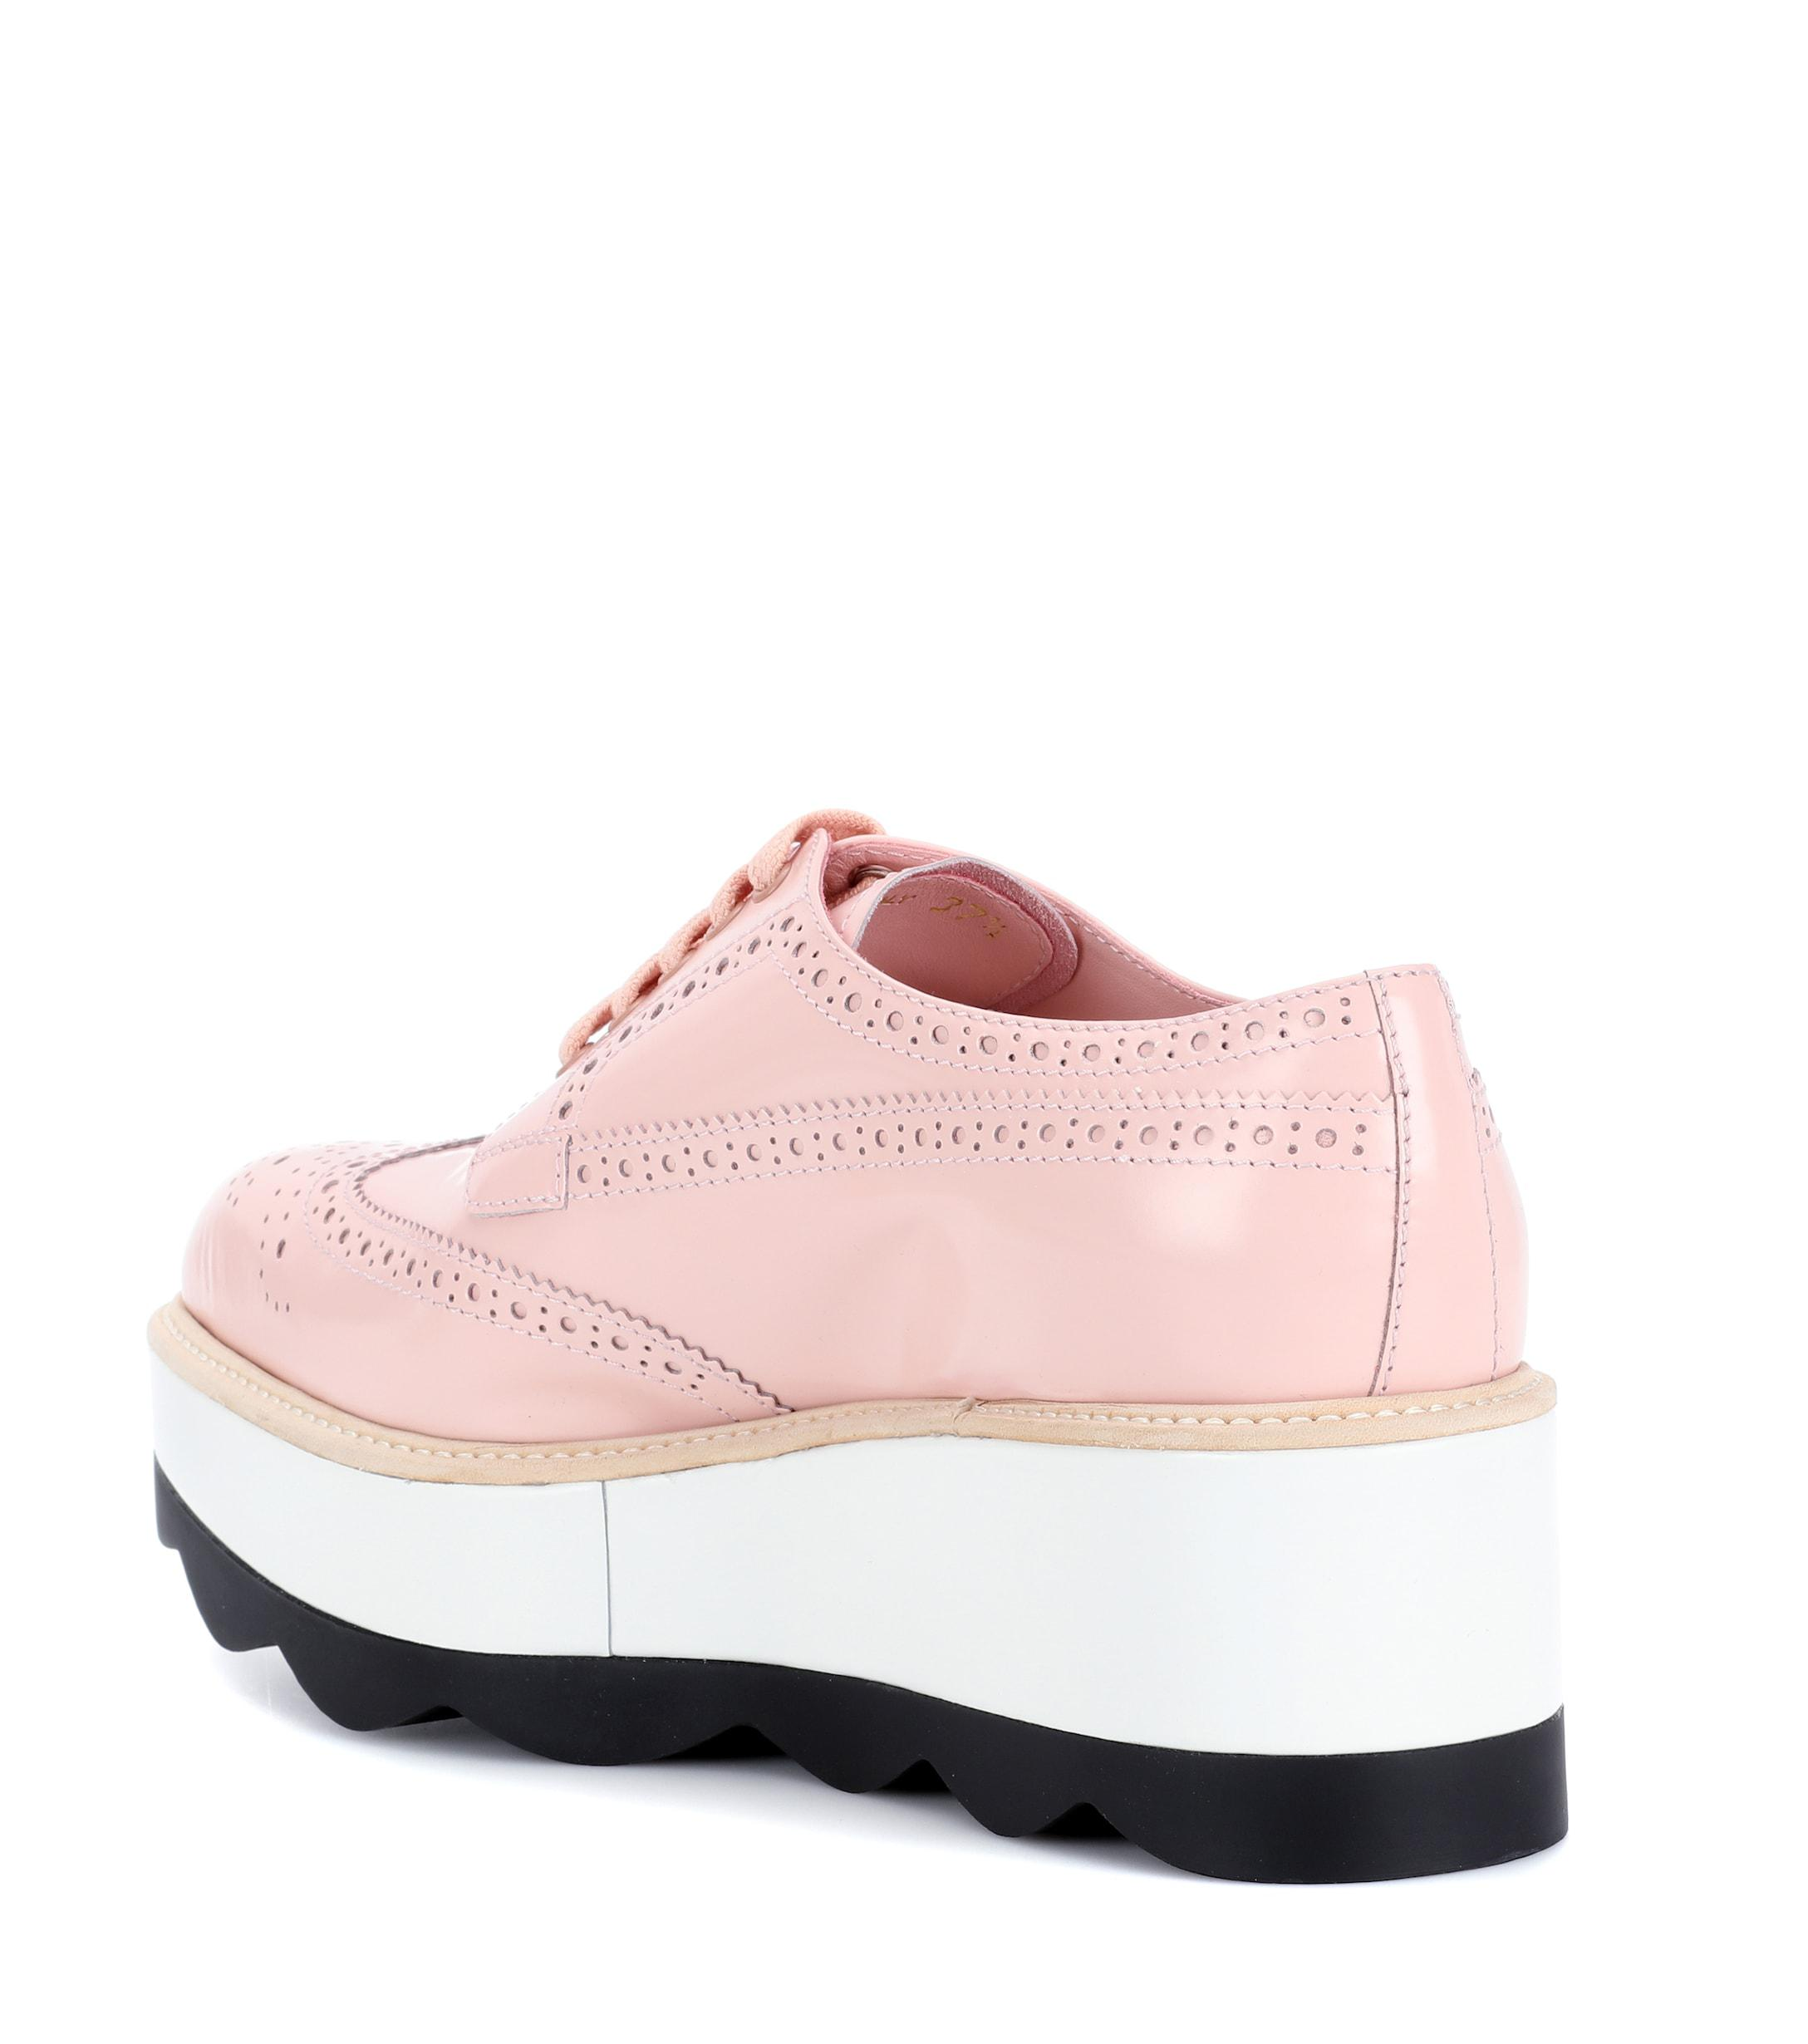 313dba74a3b2 Lyst - Prada Leather Platform Oxford Shoes in Pink